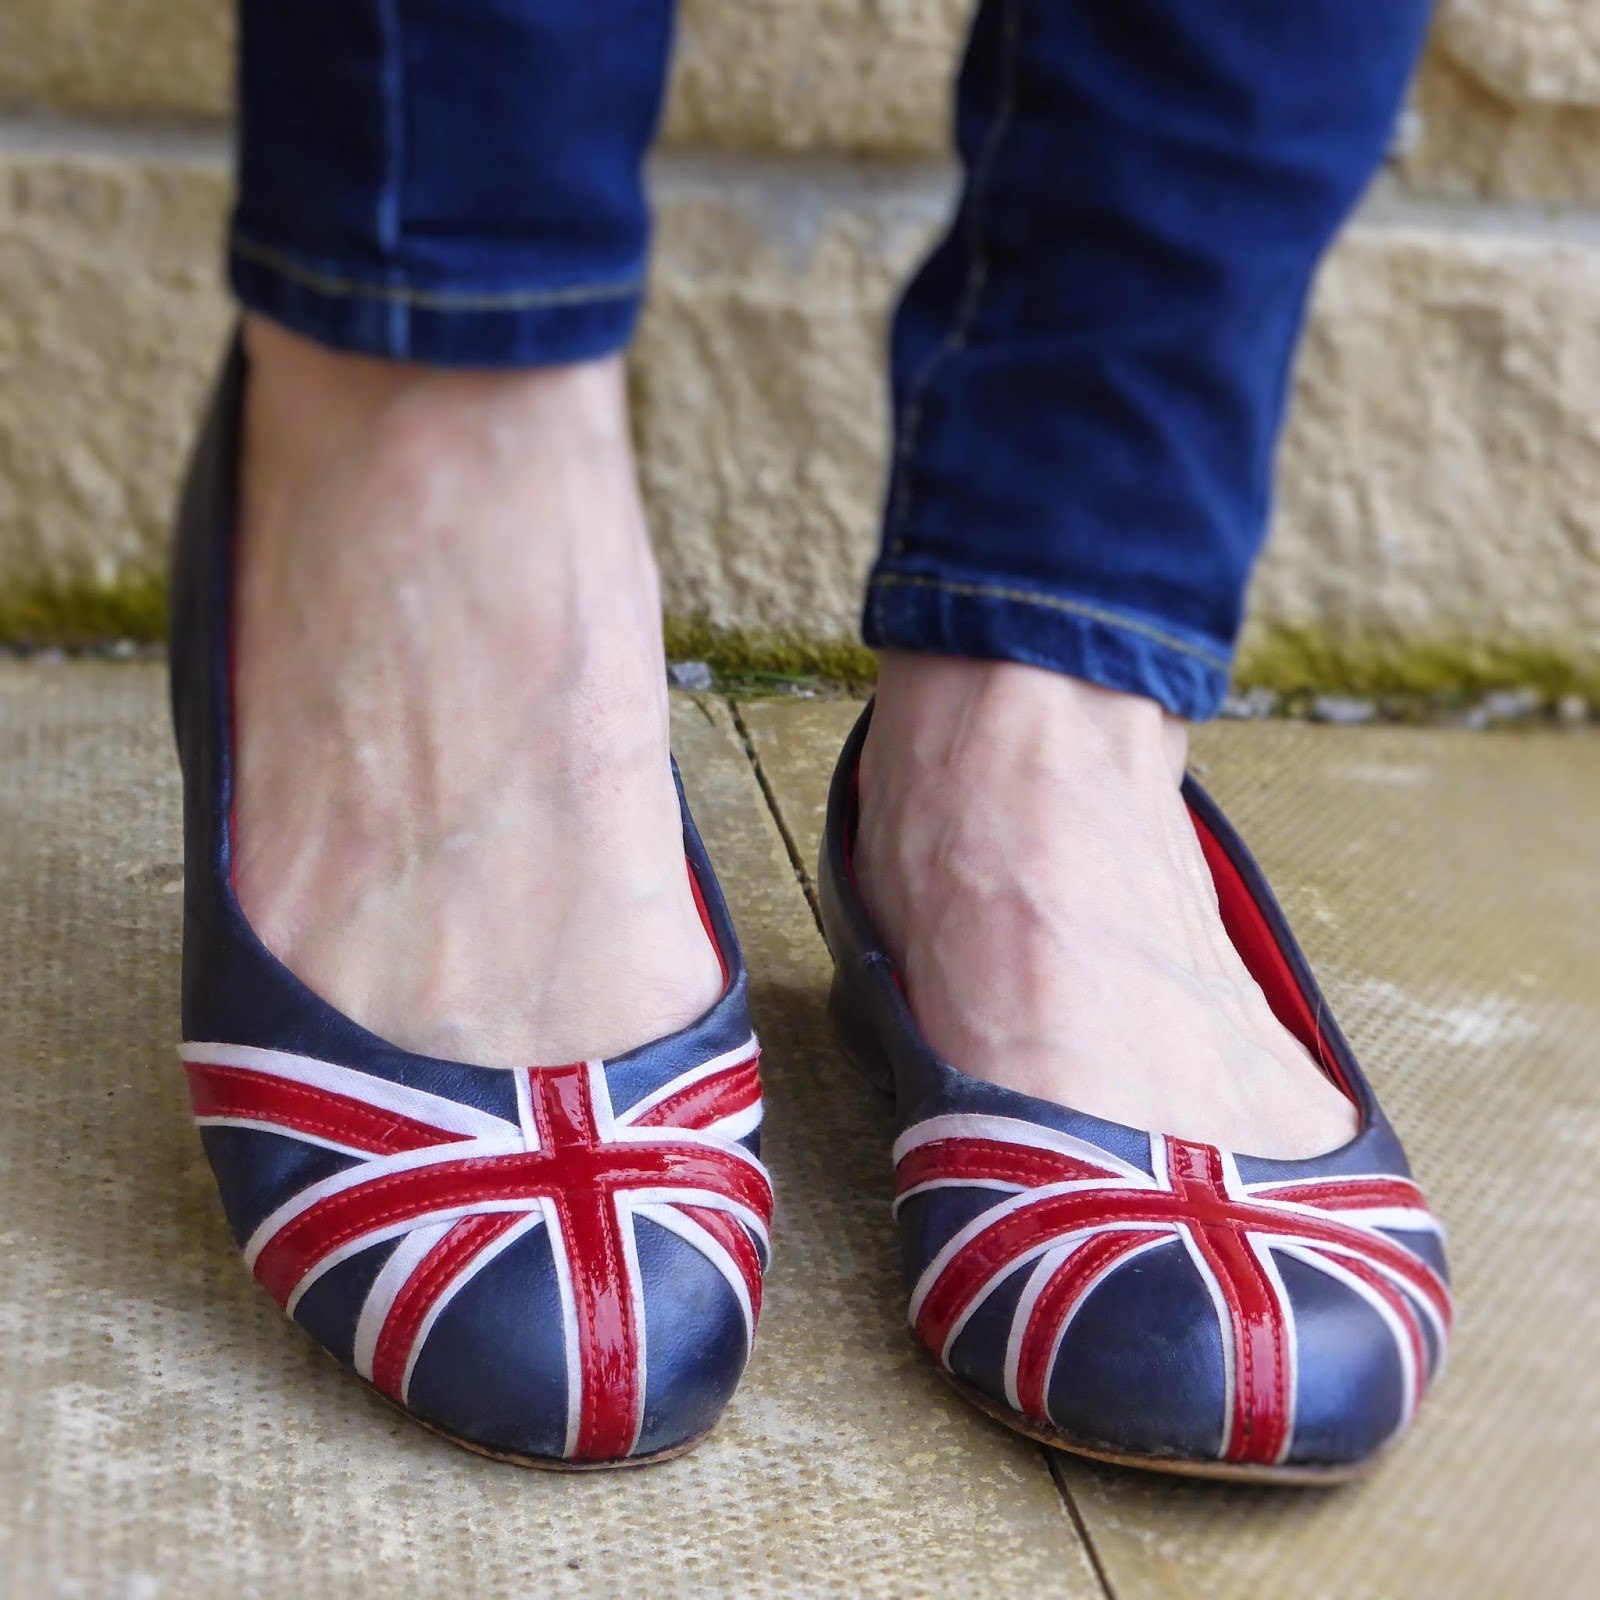 Union flag union jack ballerina shoes from The British Flat Shoe Company.